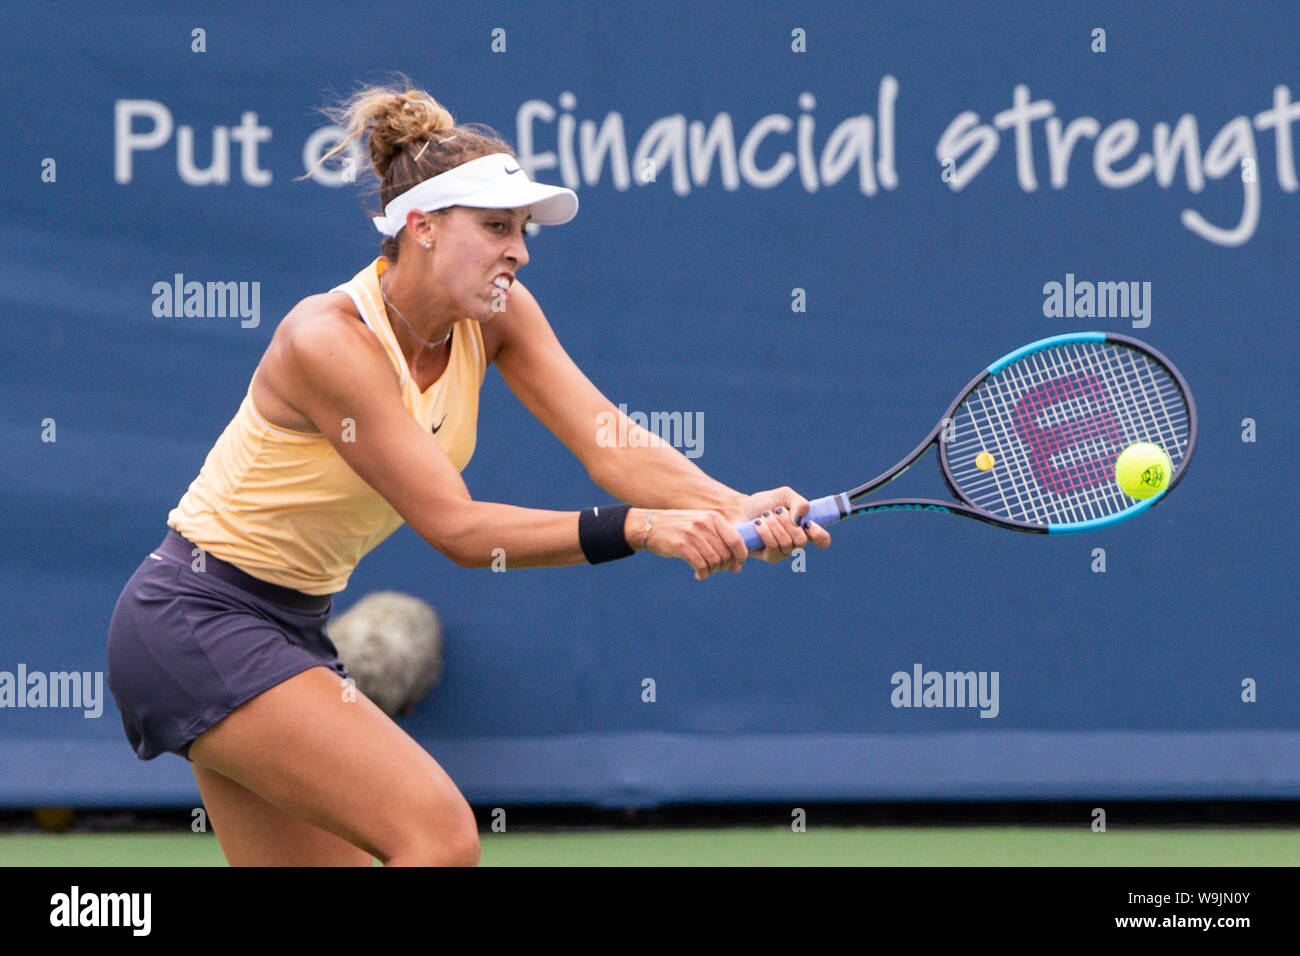 Mason, Ohio, USA. 13th Aug, 2019. Madison Keys (USA) hits a backhand shot during Tuesday's round of the Western and Southern Open at the Lindner Family Tennis Center, Mason, Oh. Credit: Scott Stuart/ZUMA Wire/Alamy Live News Stock Photo